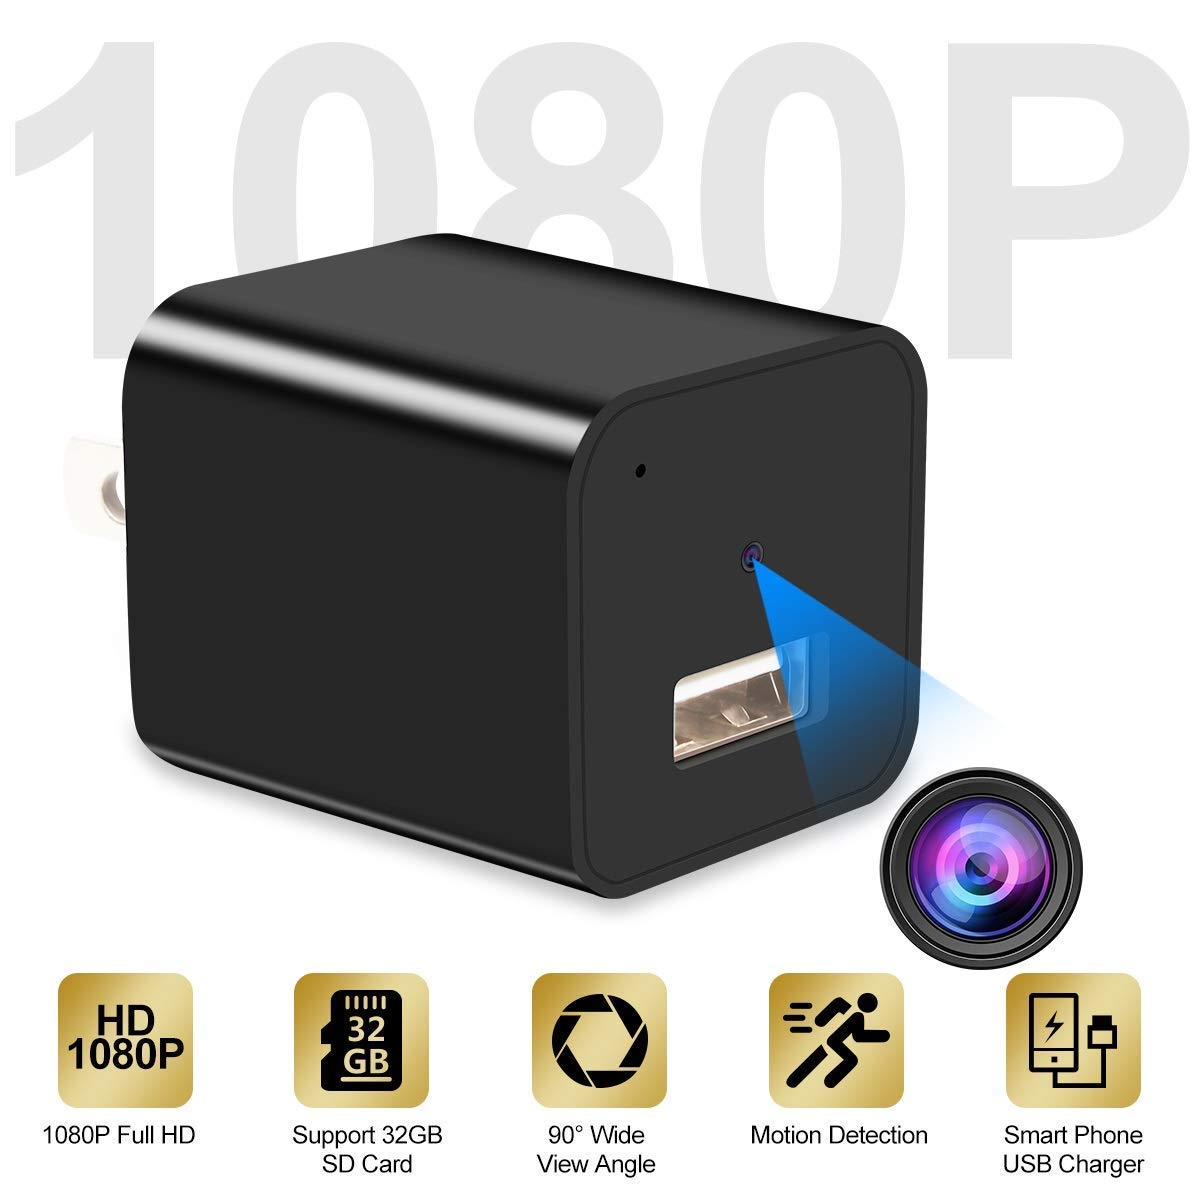 Hidden Camera, 1080P HD USB Charger Camera, Mini Camera, Nanny Camera,Security for Home Office Hotel - No WiFi Needed - 2019 Version by Kimuvin